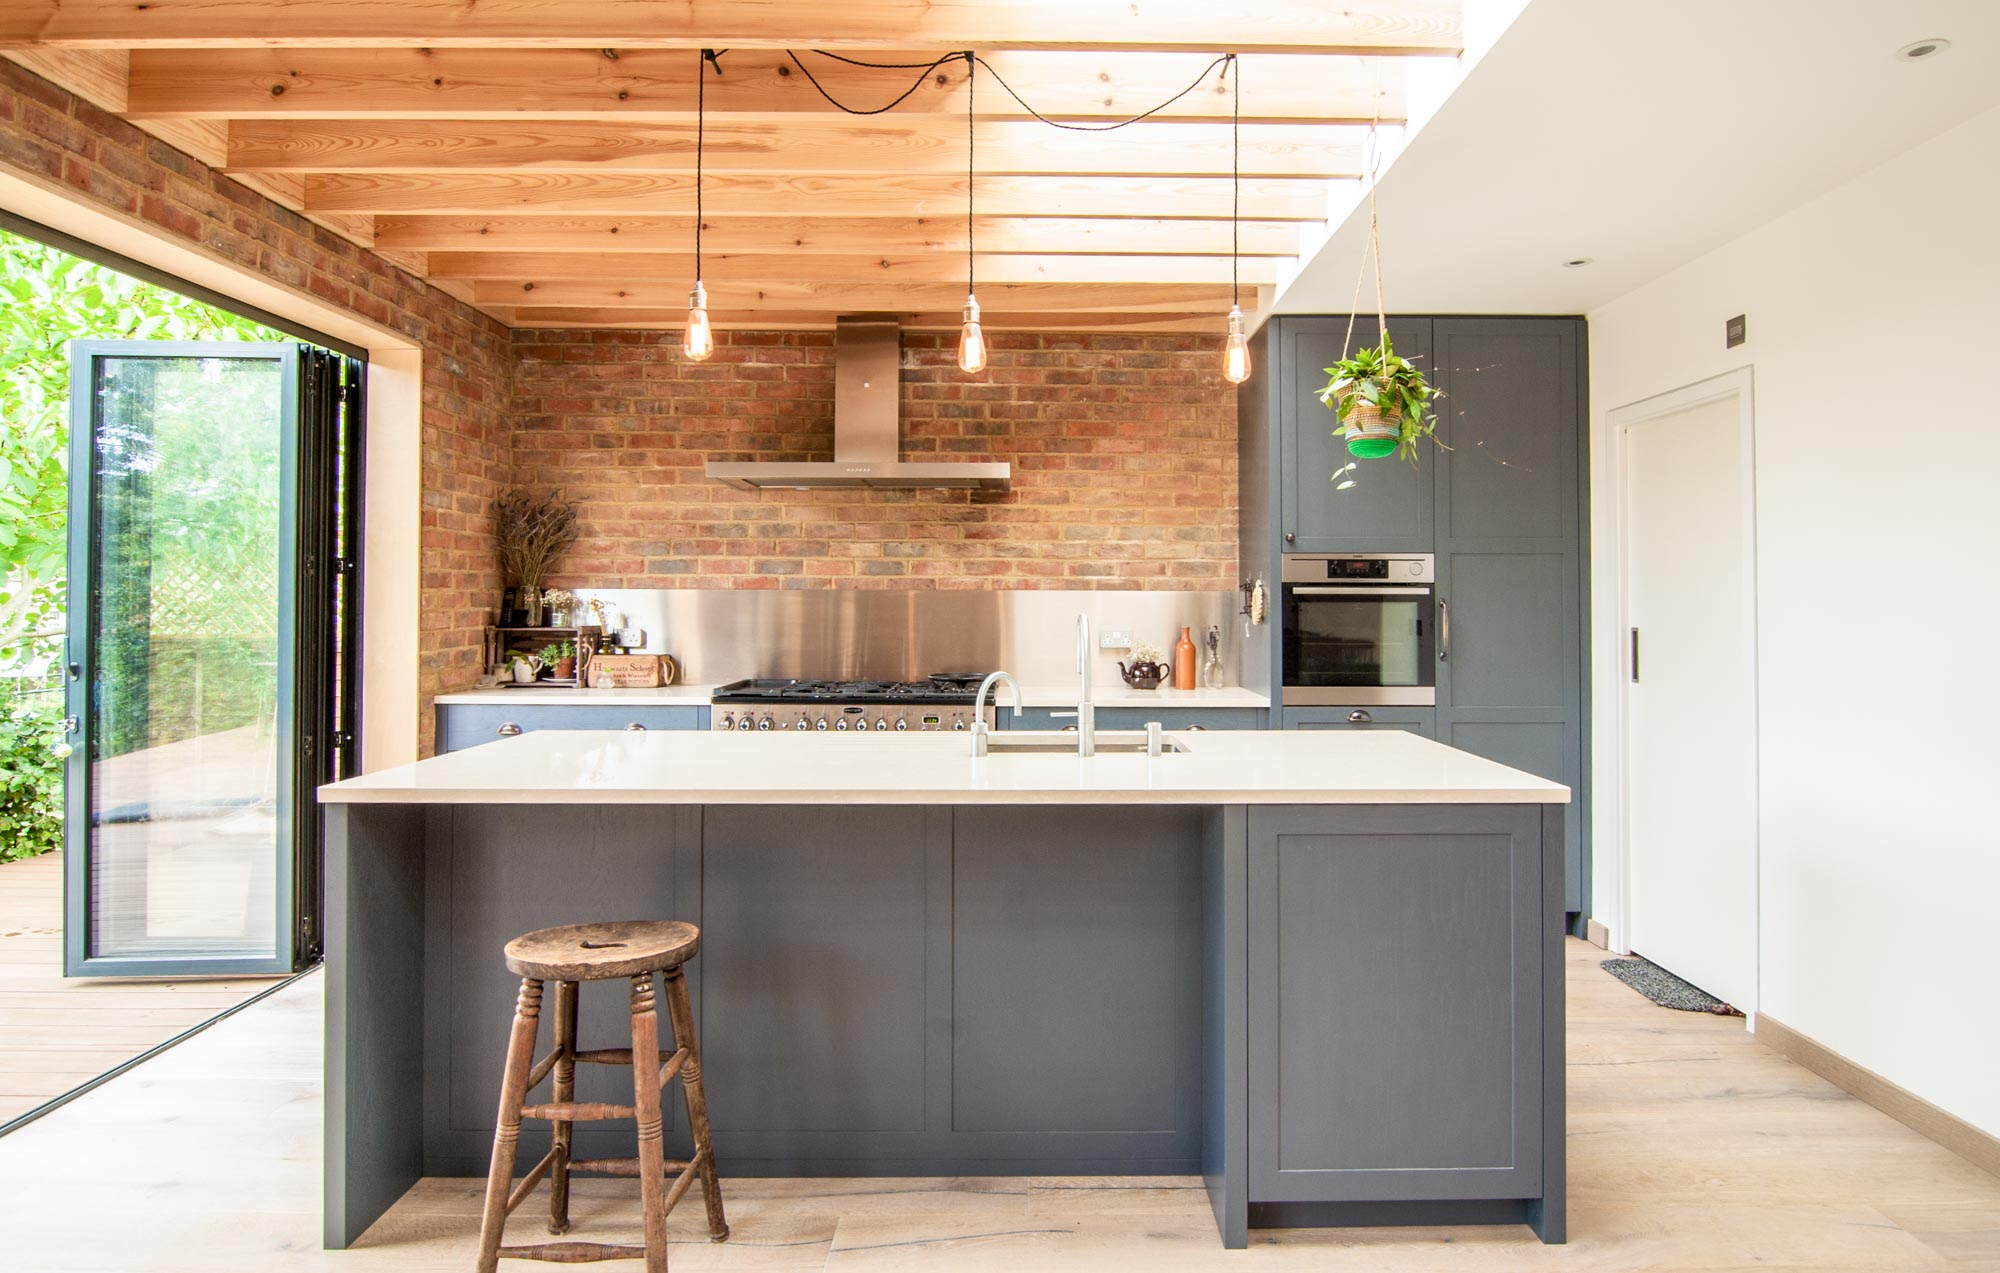 Exposed brick walls and timber beams in the new kitchen extension.